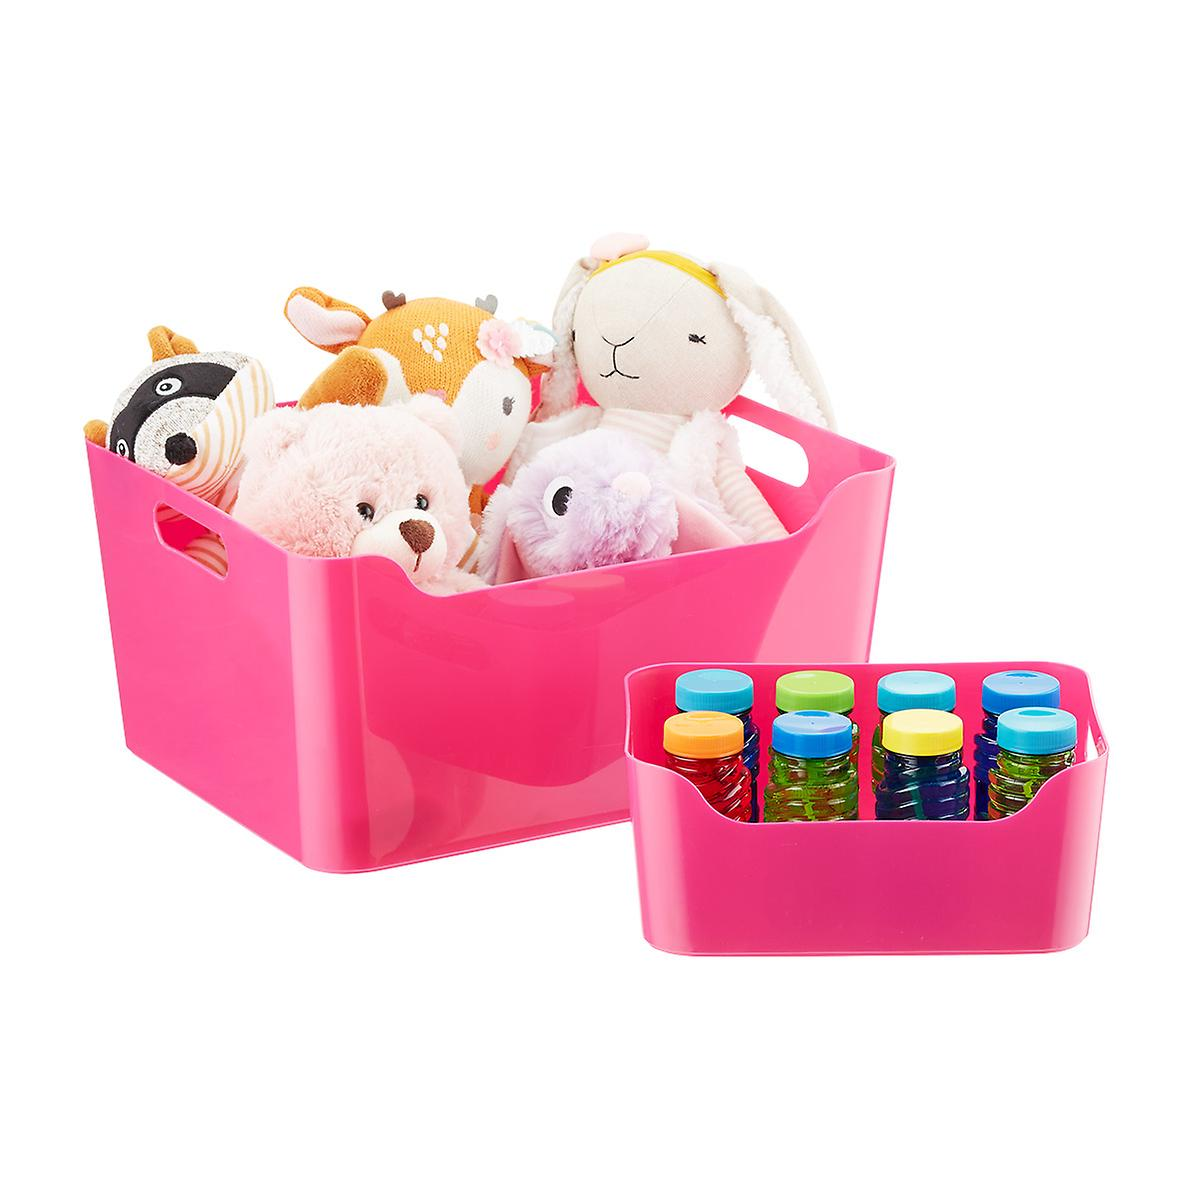 Fuschia Plastic Storage Bins with Handles